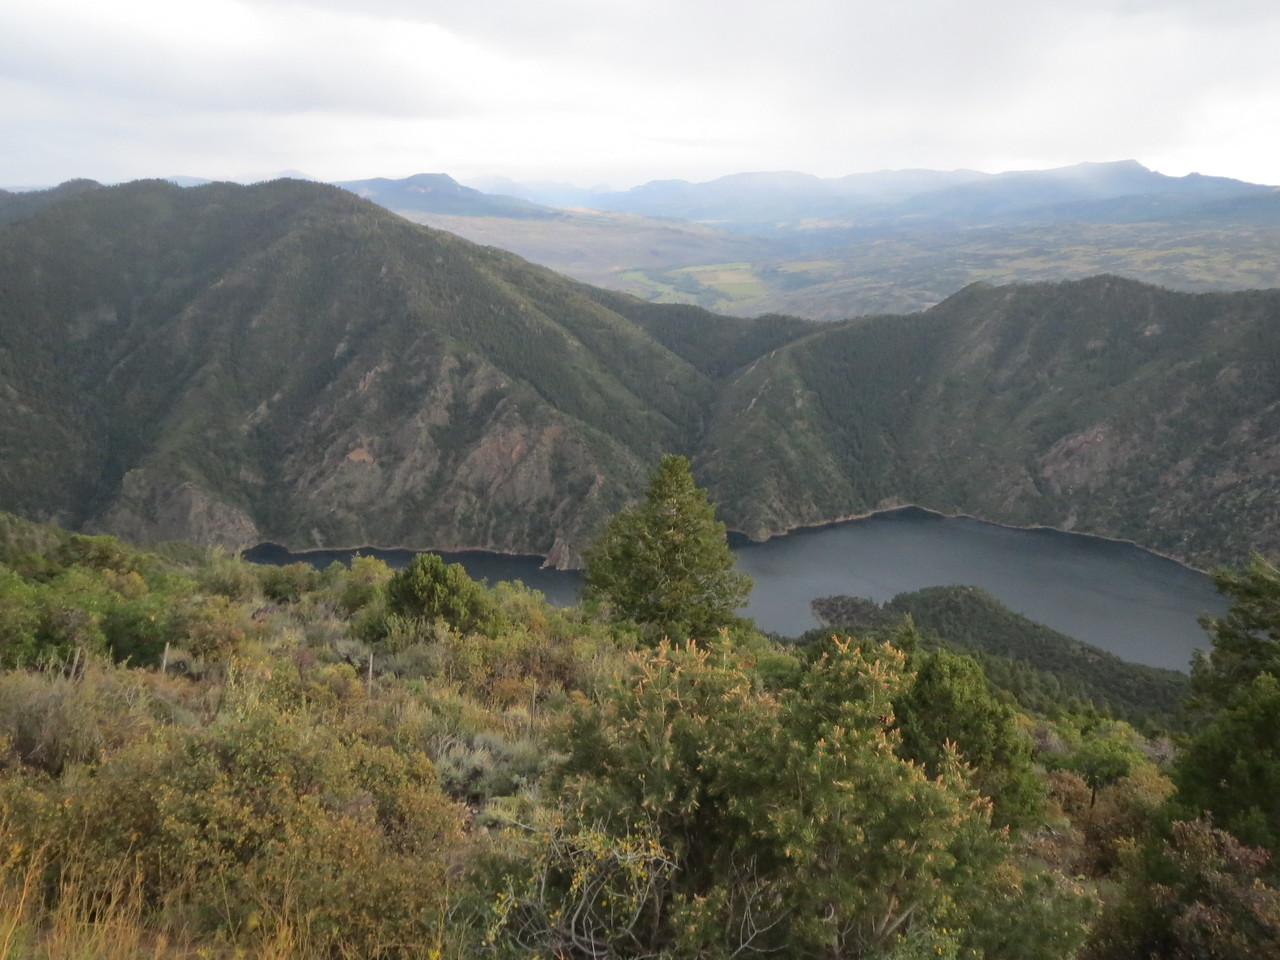 Day 3 (363 miles):   CO 92 and the Black Canyon of the Gunnison River